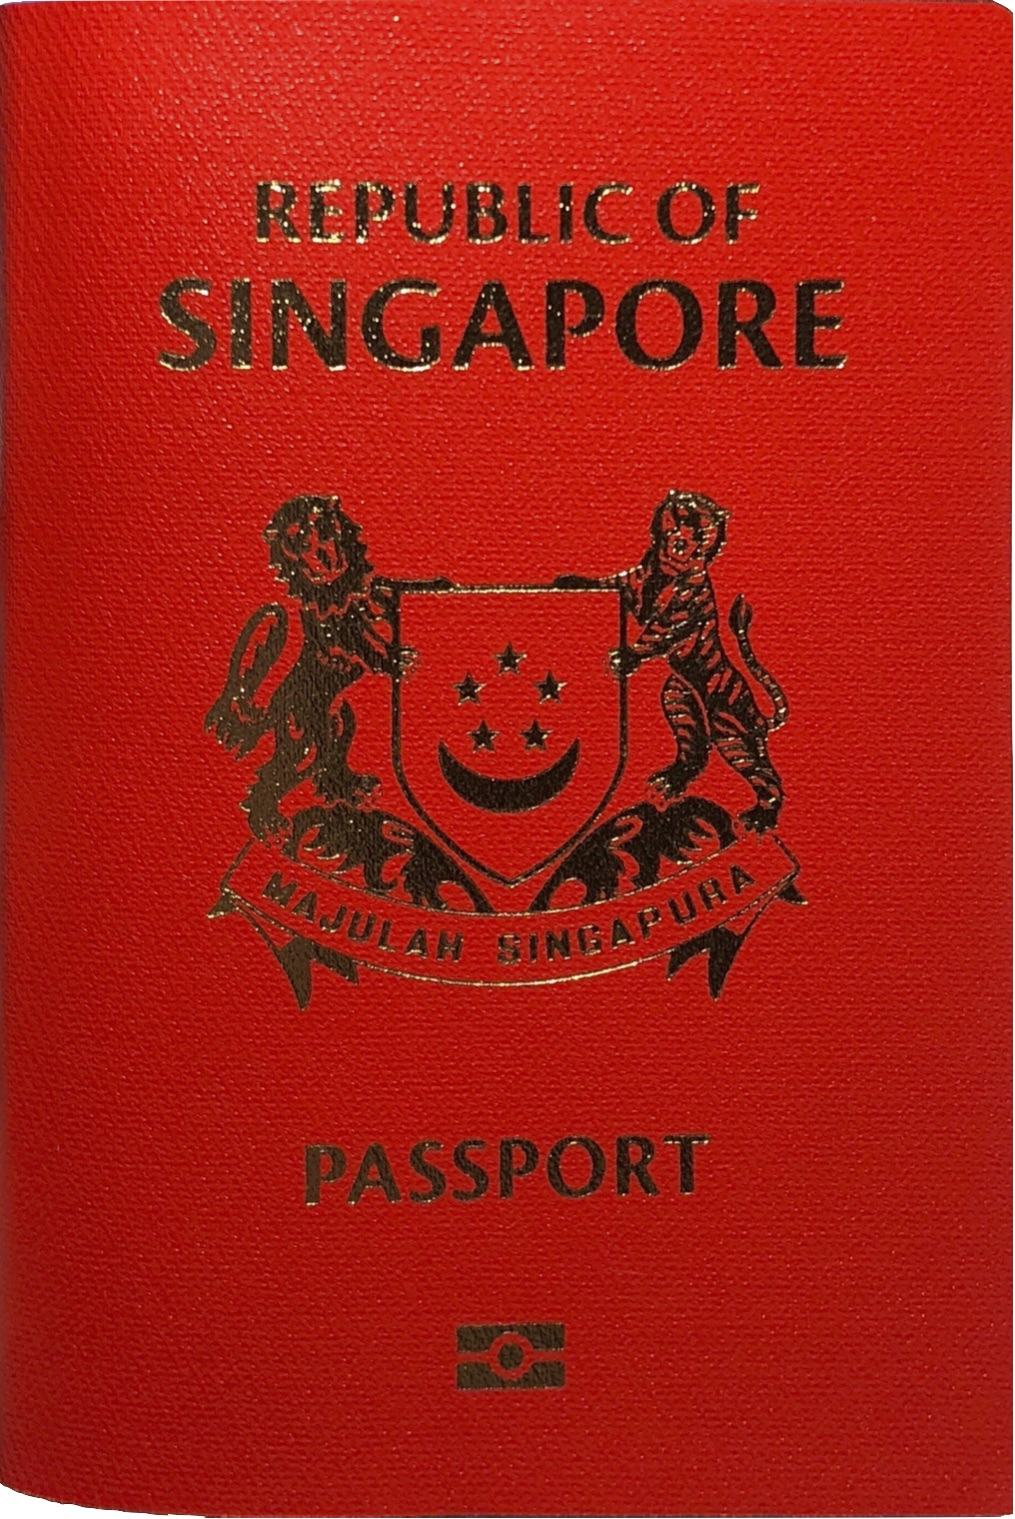 Passport of a Singapore citizen